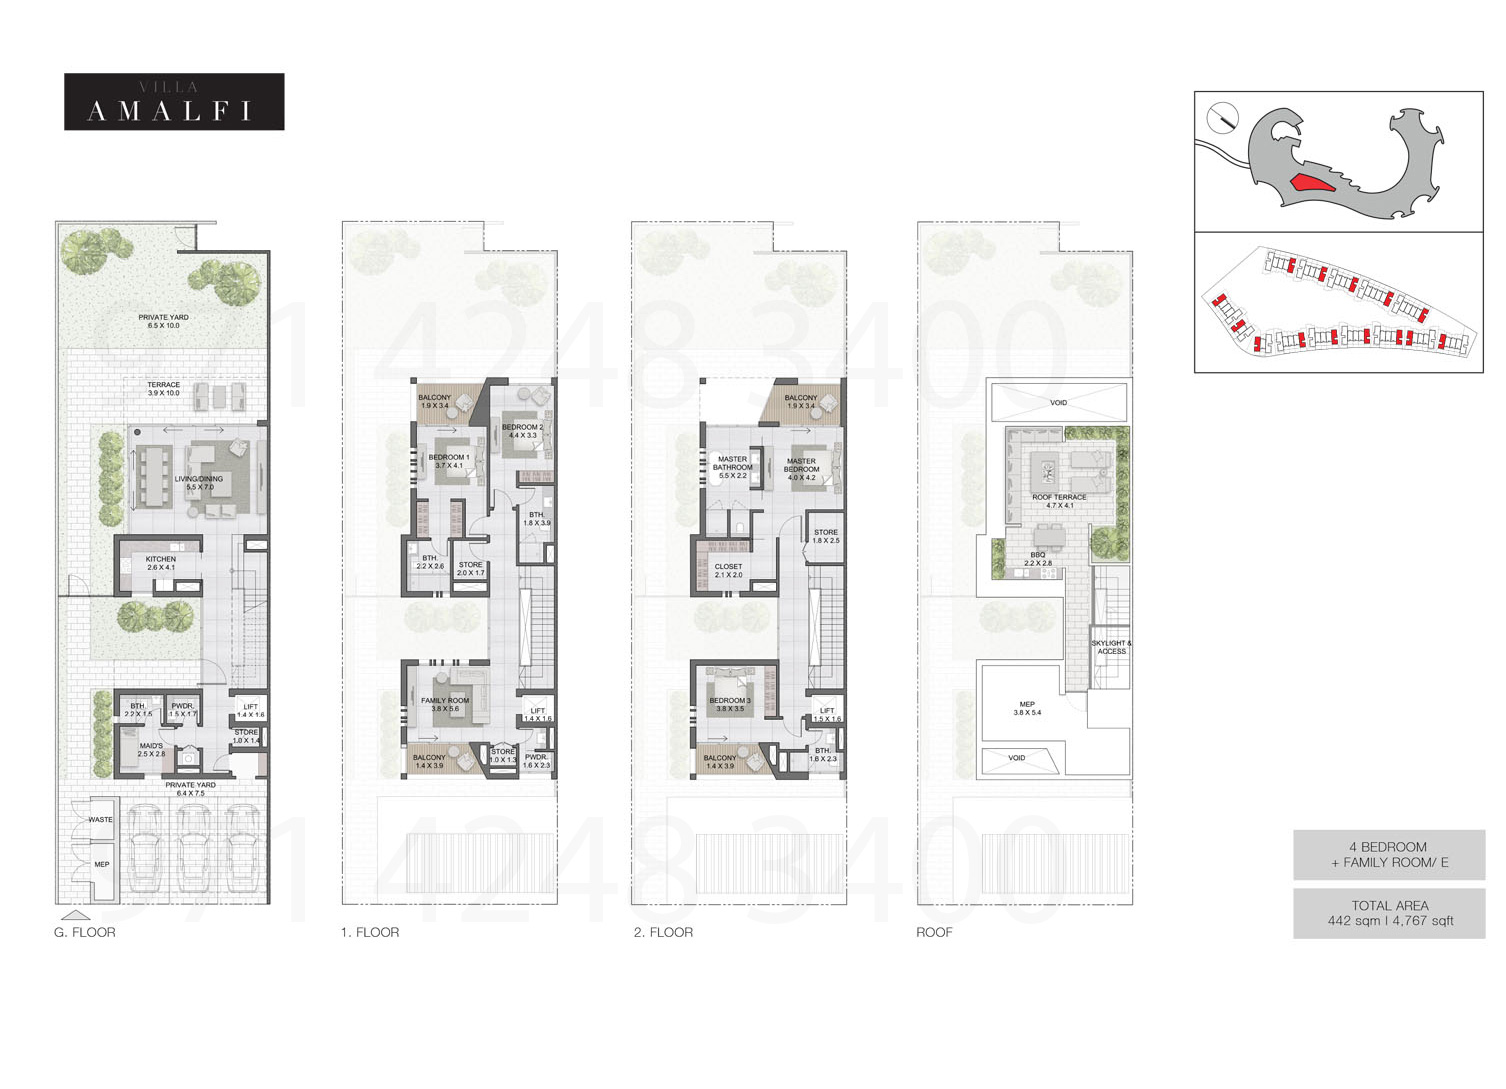 Bedroom 4 Villas, Sizes from 4,767 sq.ft